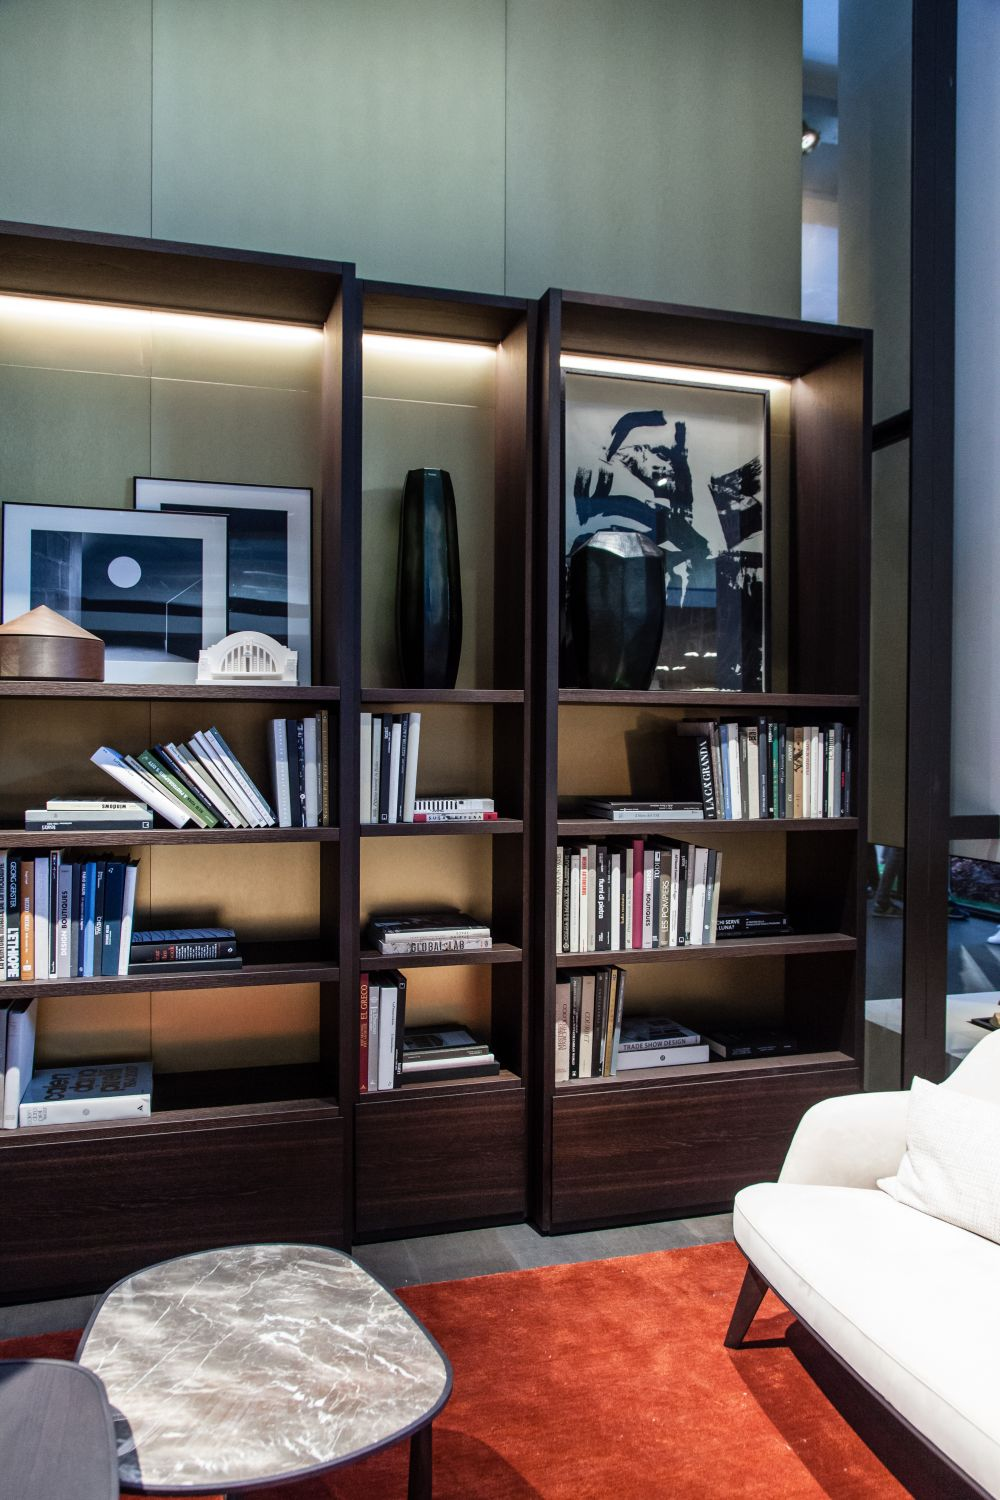 Living Room Like A Library: So You Can Surround Yourself